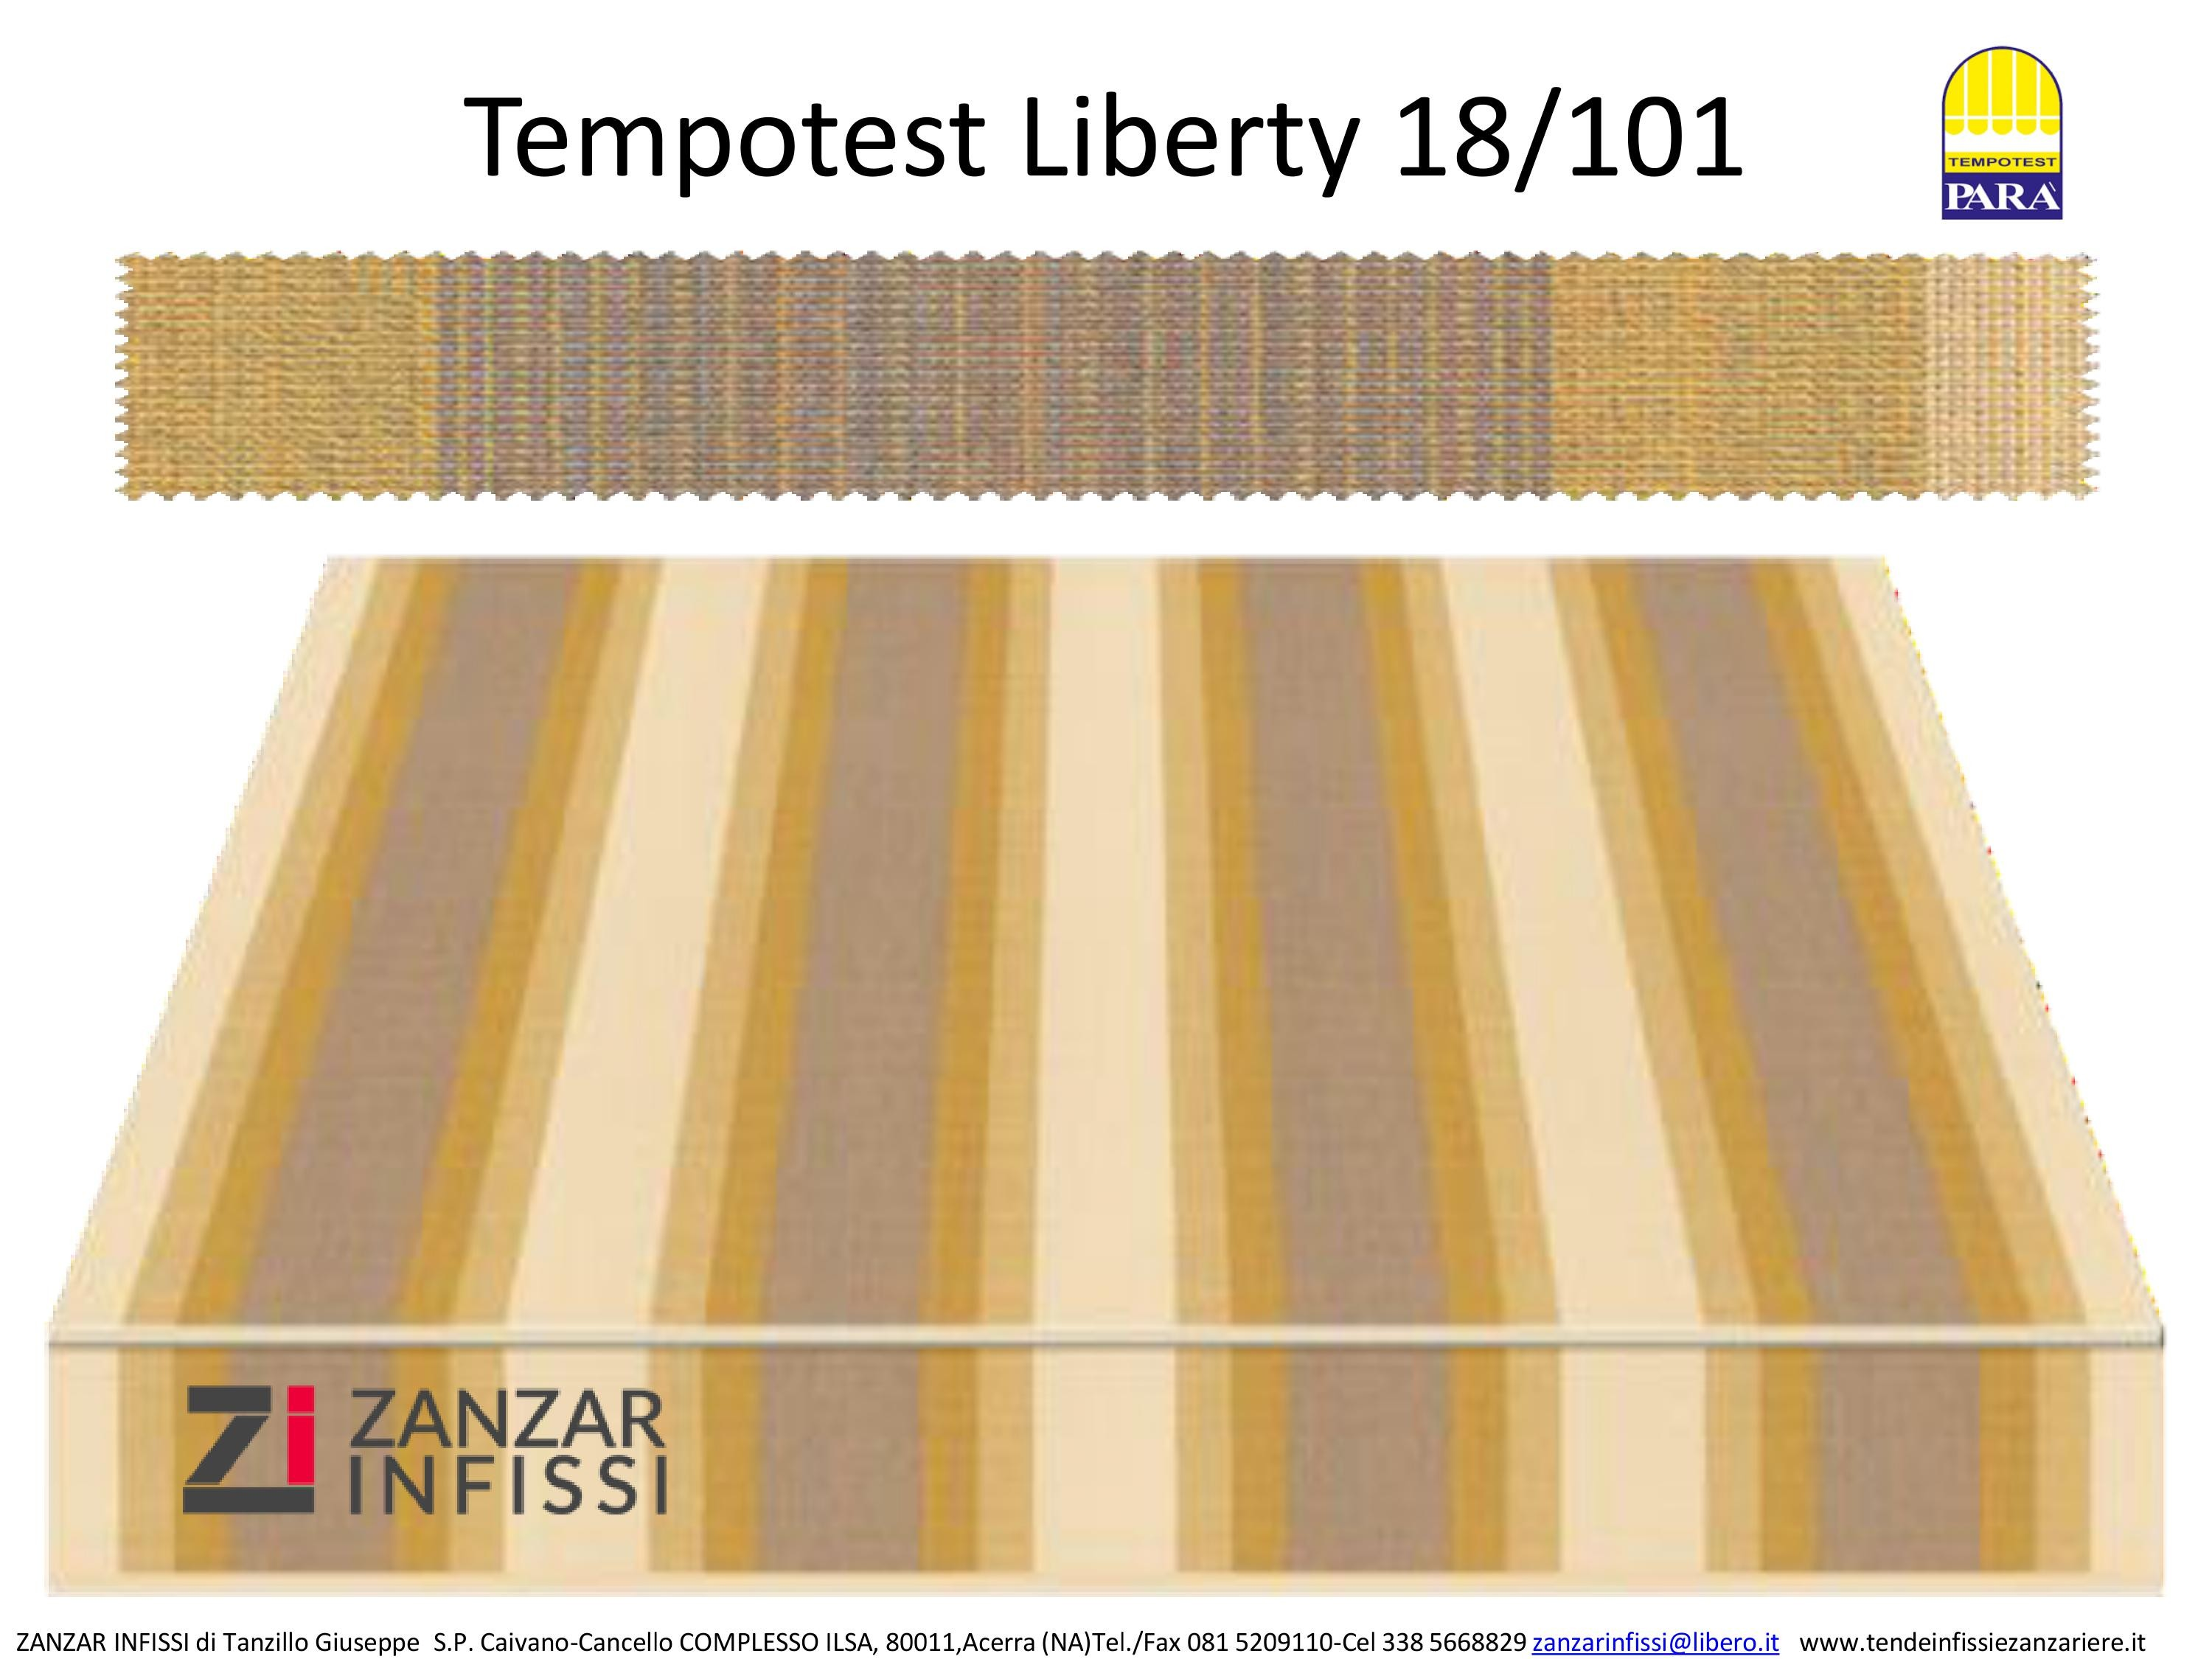 Tempotest Liberty 18/101